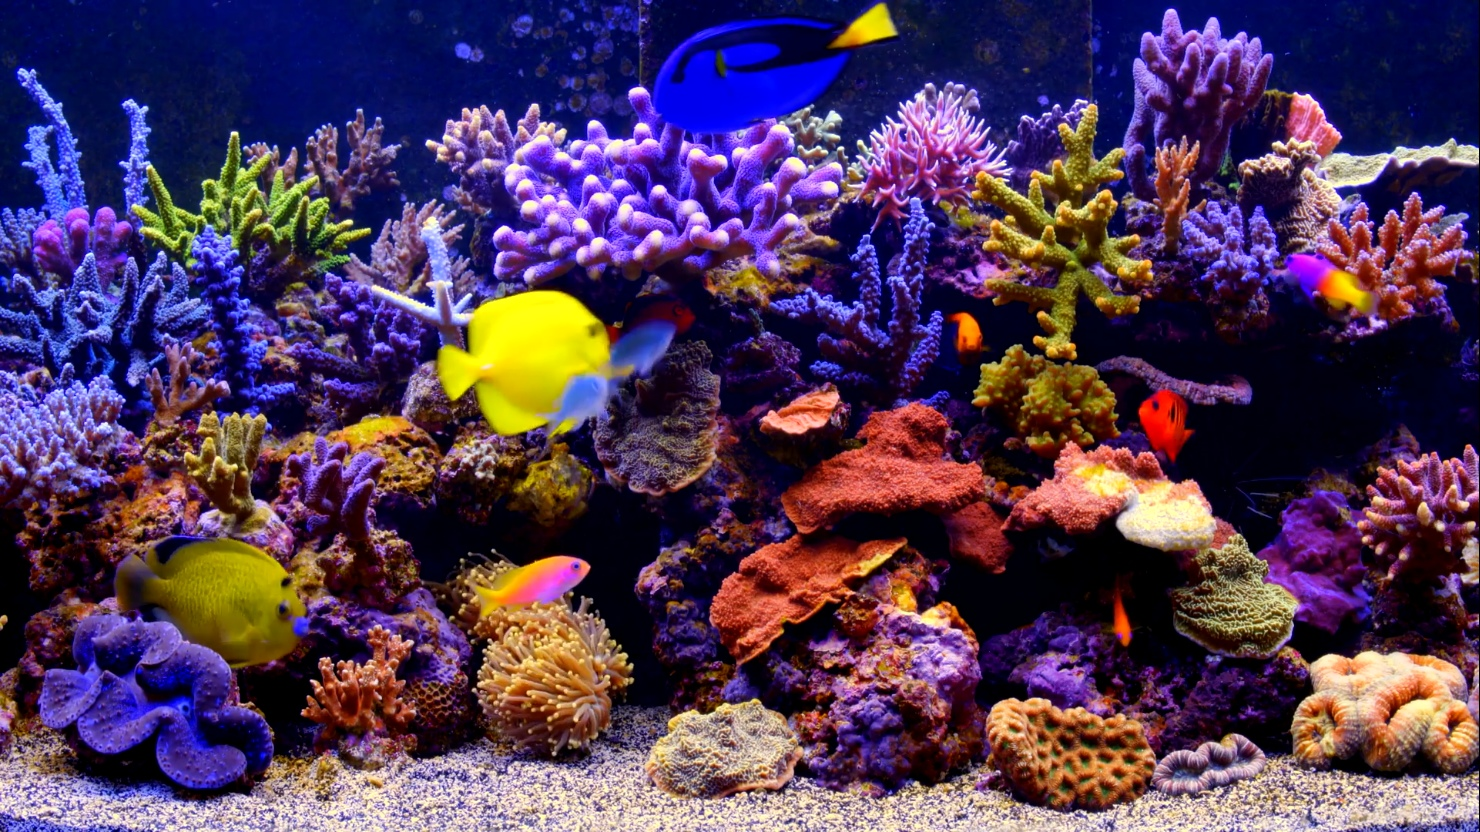 Aquarium-Live-Wallpaper by SmithJerry